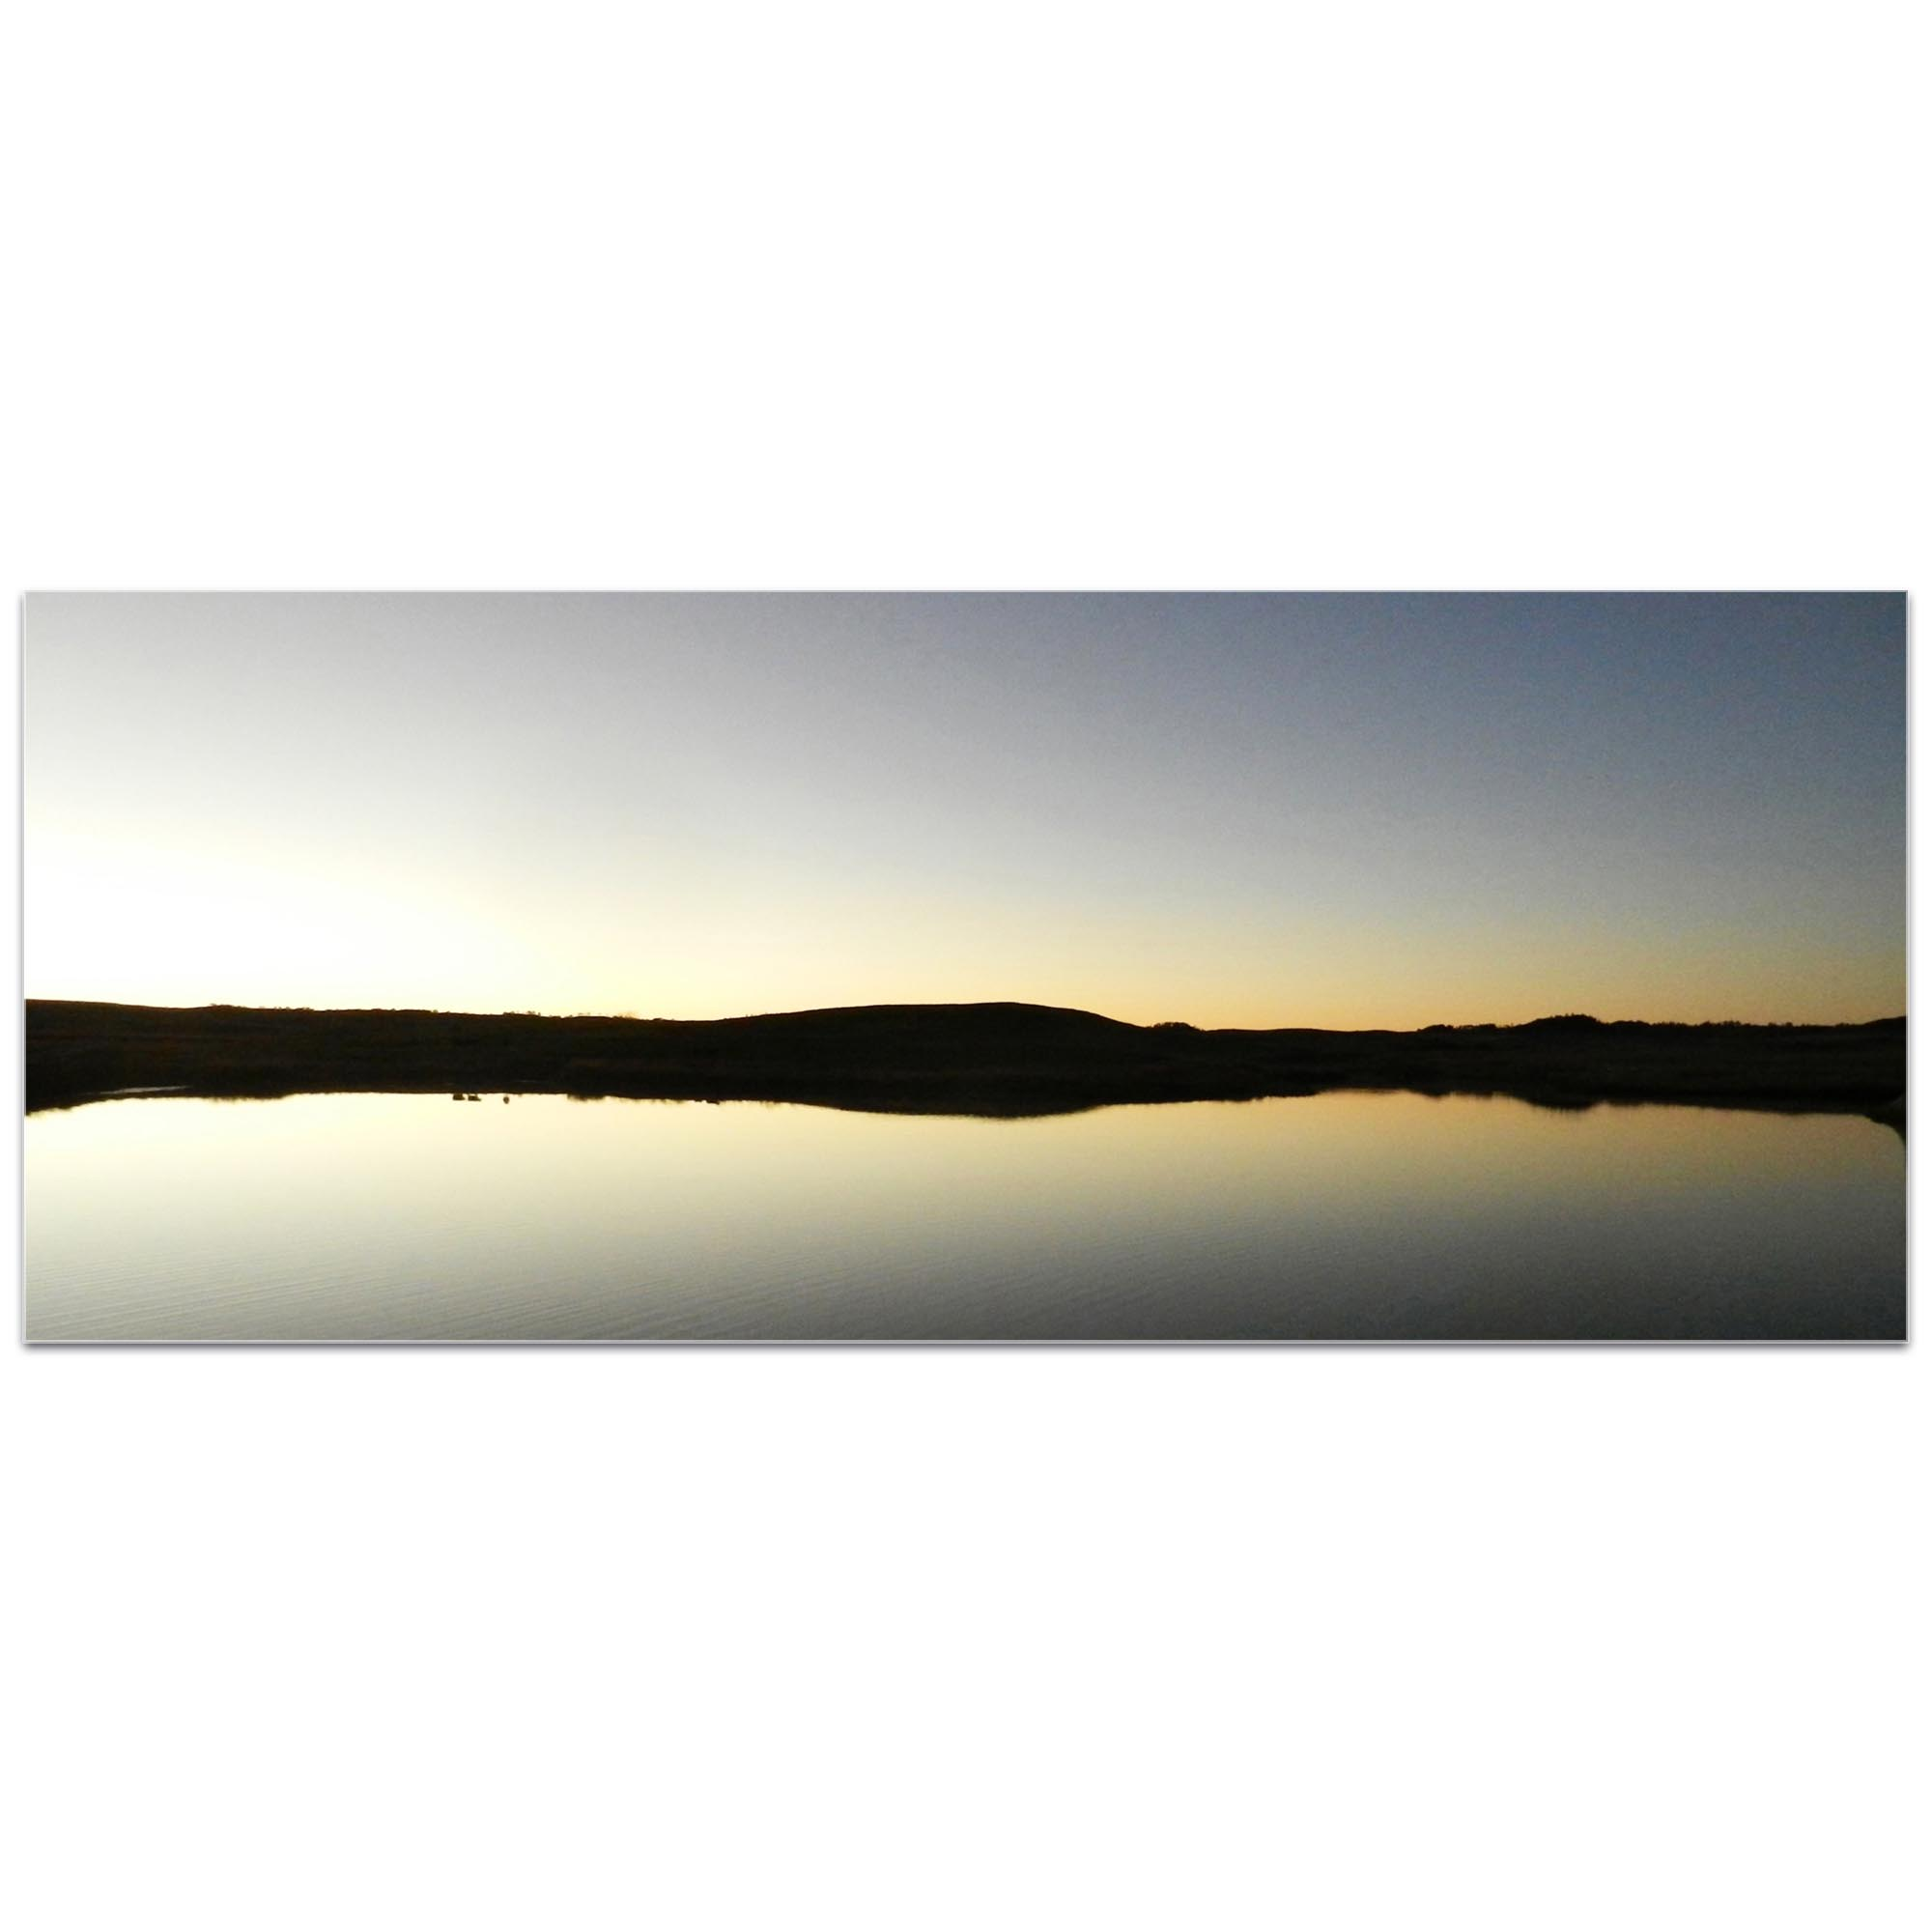 Western Wall Art 'Lakeside Sunset' - American West Decor on Metal or Plexiglass - Image 2